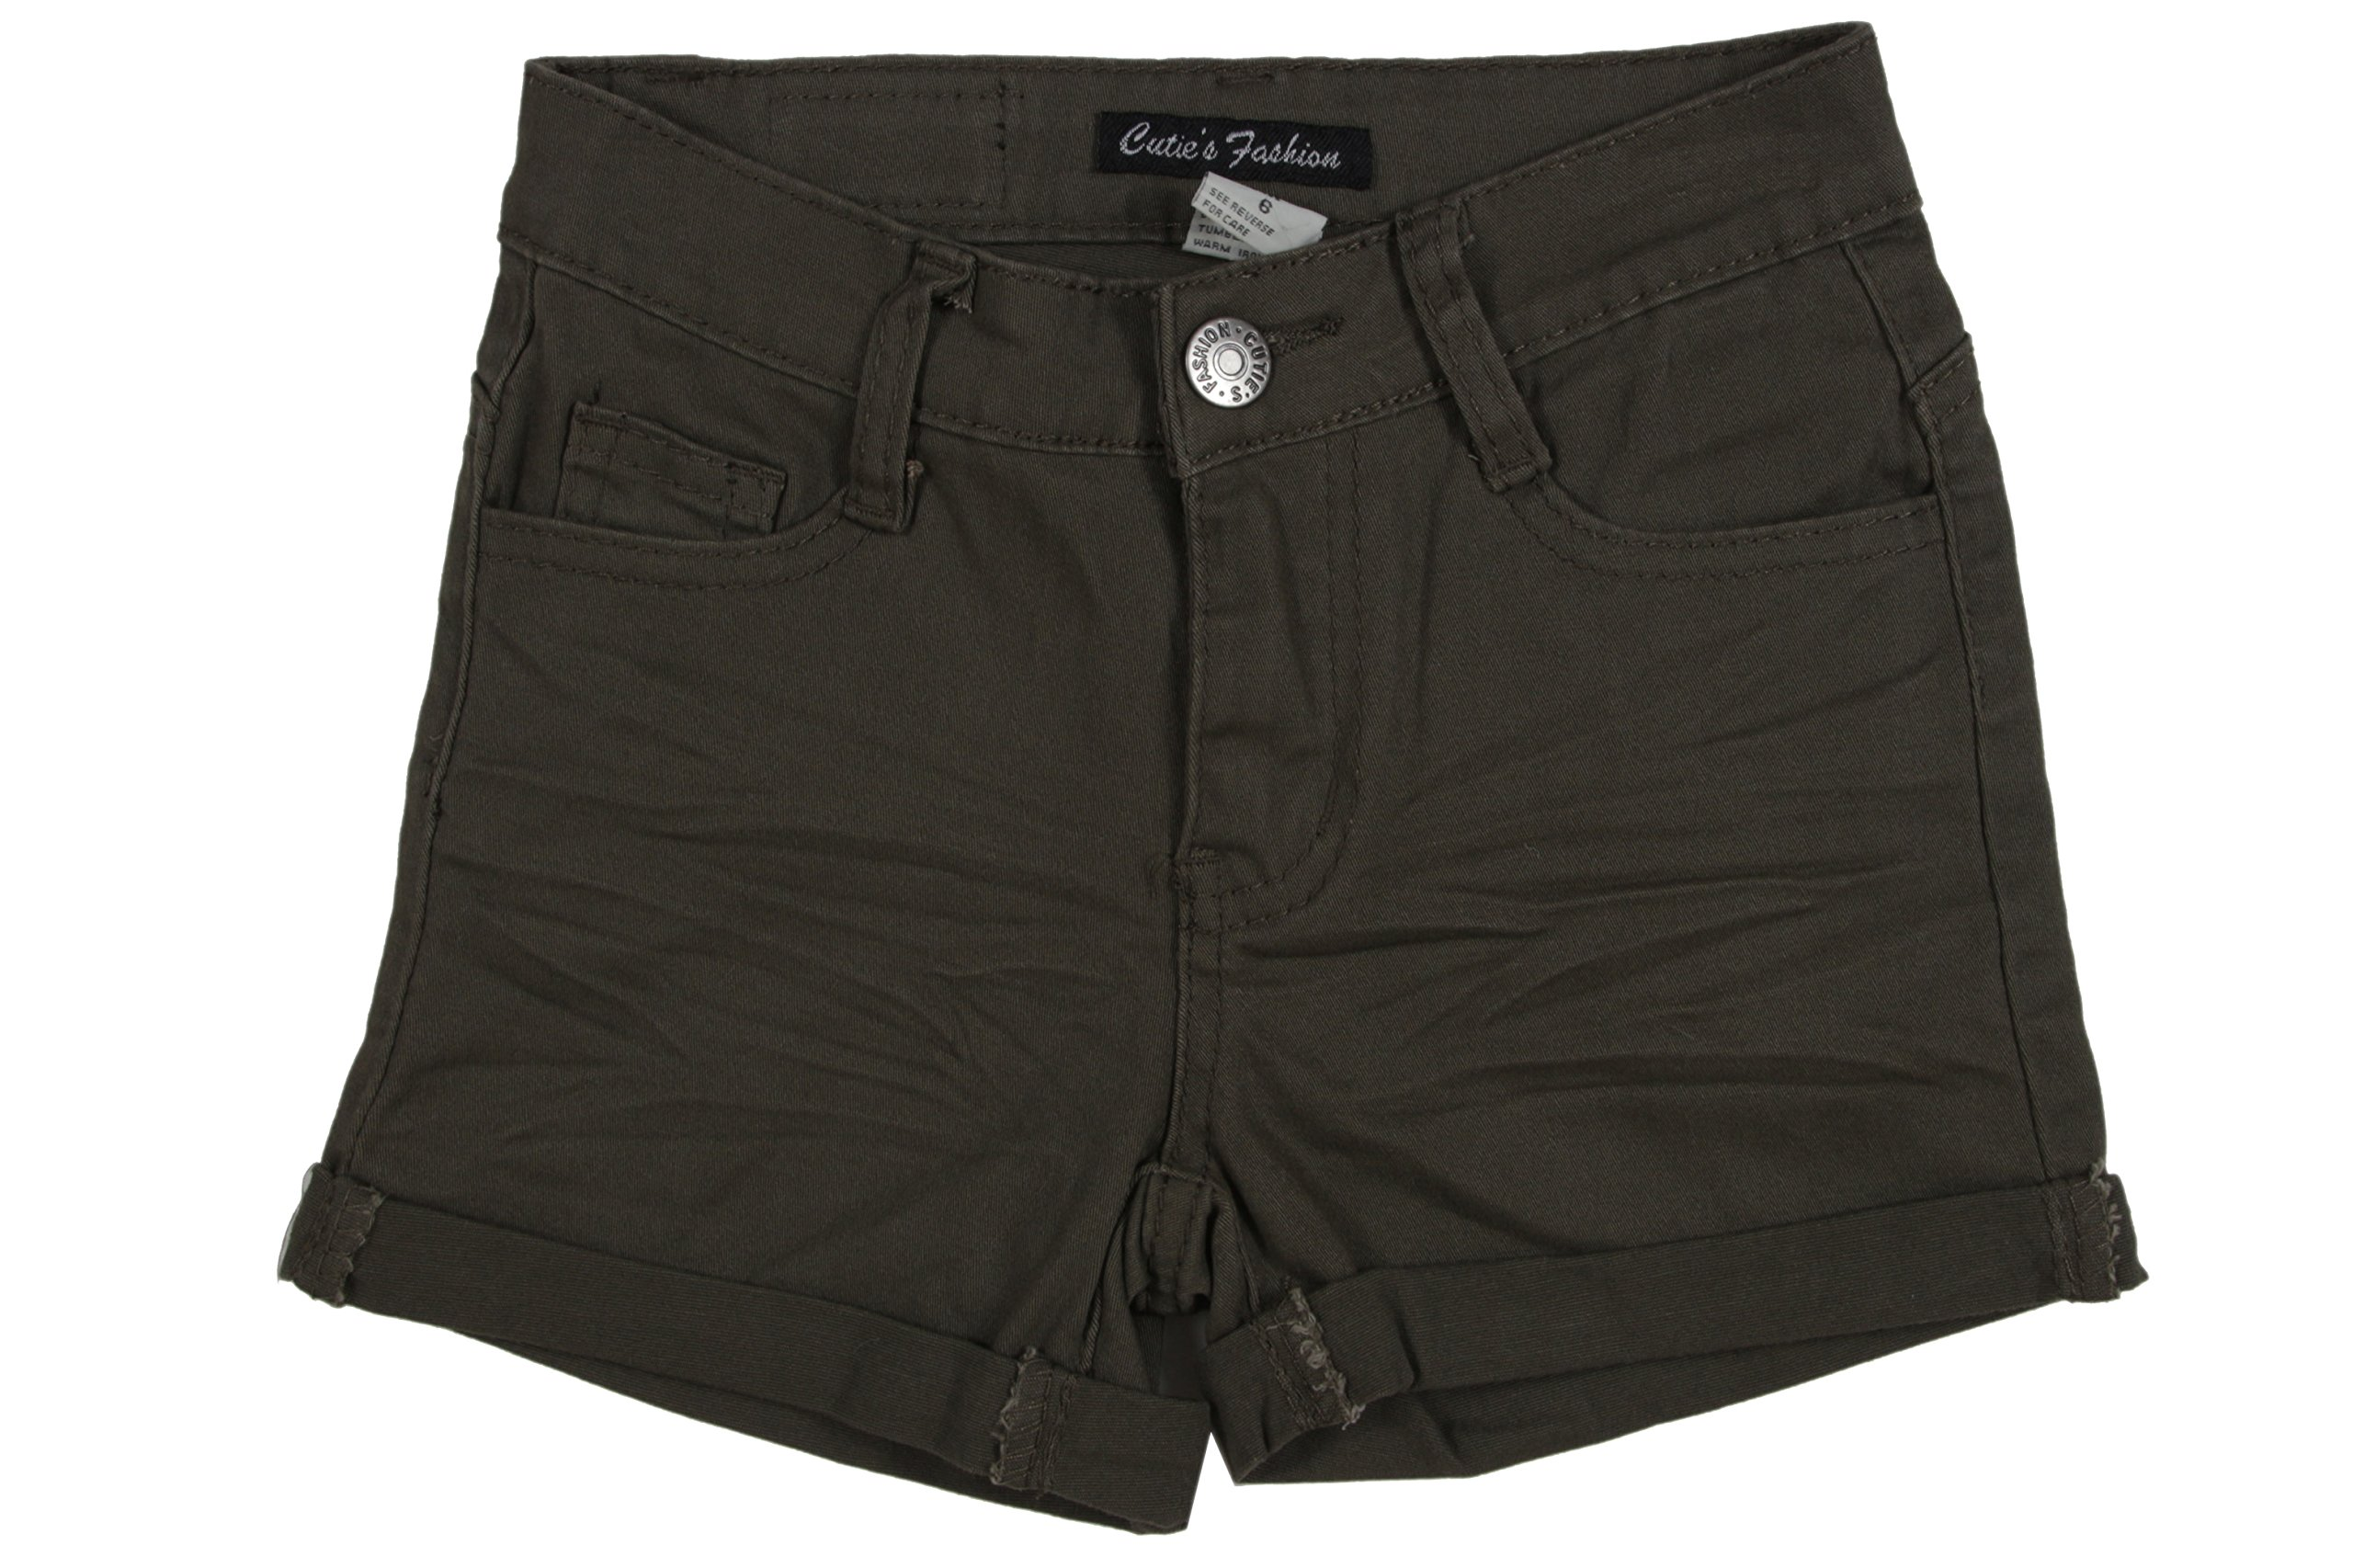 Fashion2Love JGSH193 - Girls' Stretch 5 Pockets Basic Colored Roll-up Jeans Shorts in Army Green Size 12